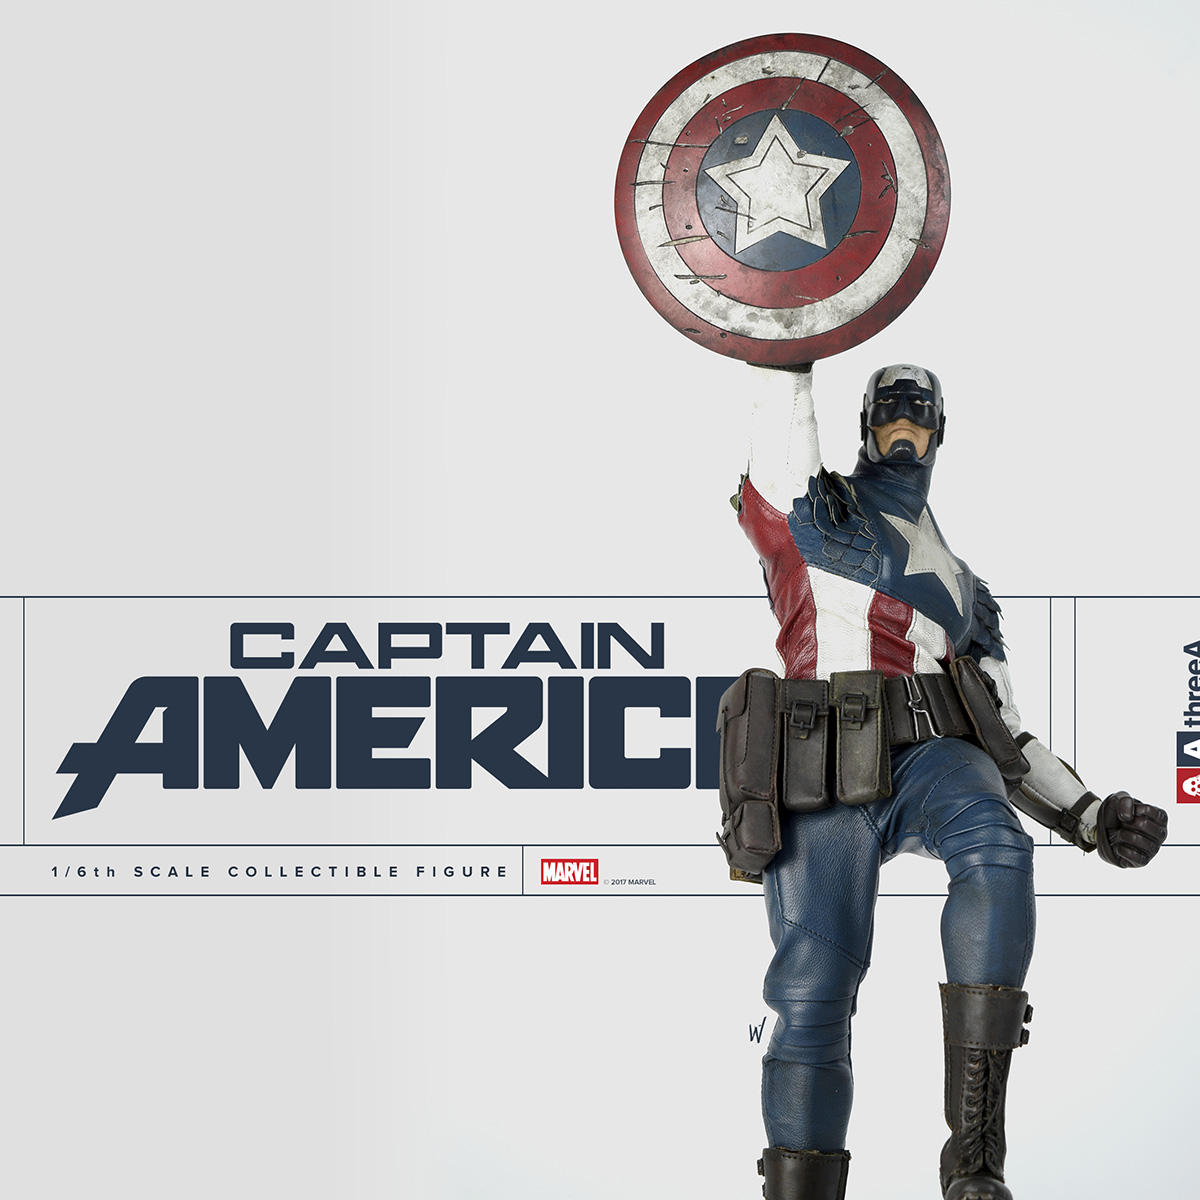 3A_Marvel_CaptainAmerica_Square_Ad_006brev.jpg